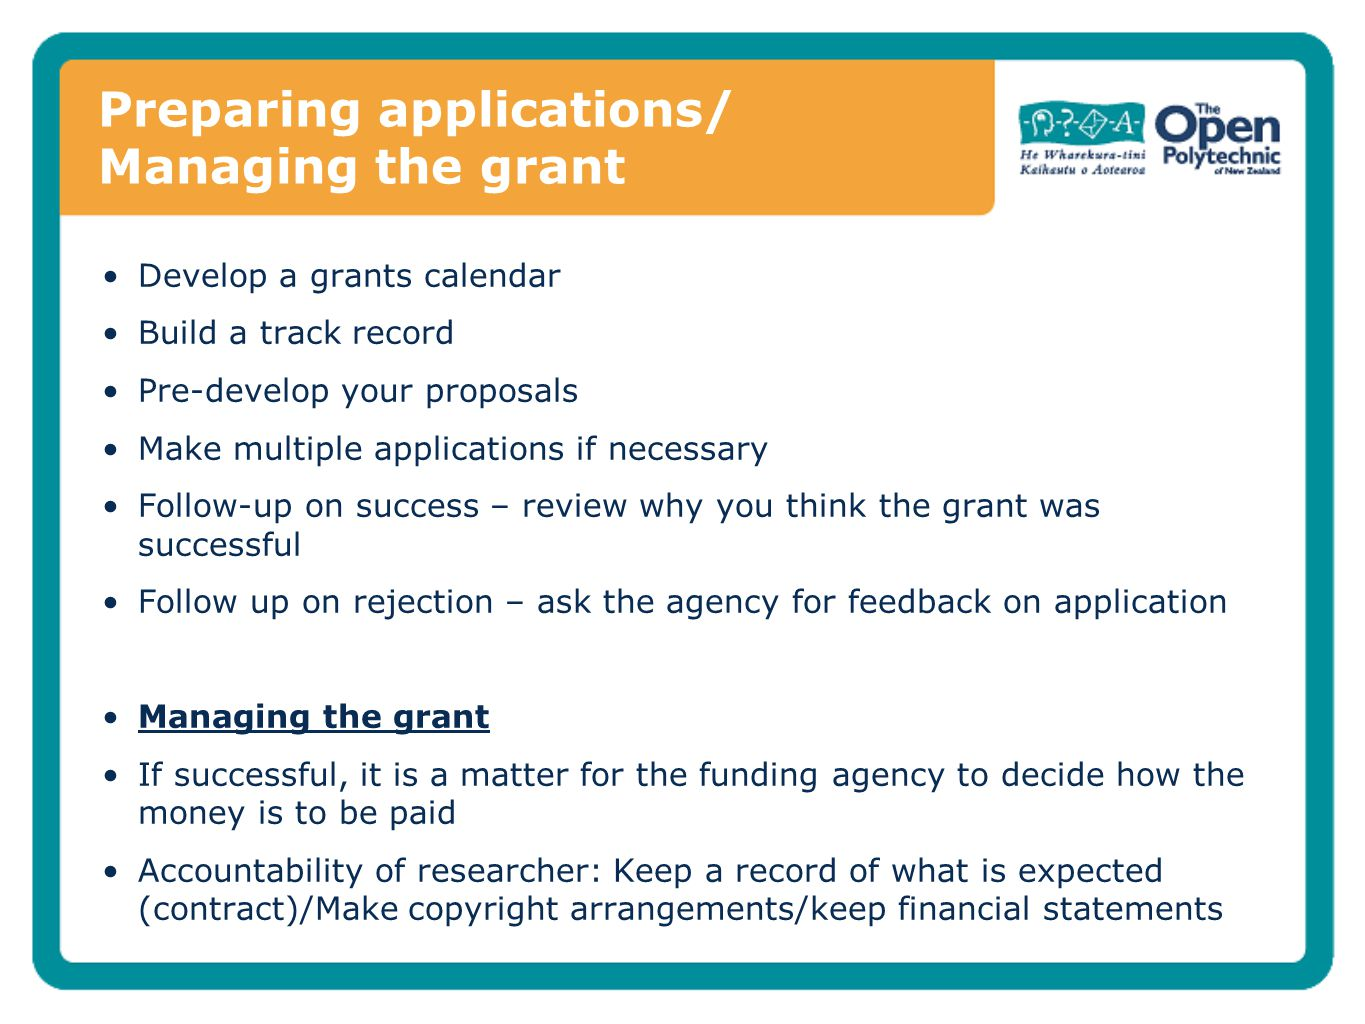 Preparing applications/ Managing the grant Develop a grants calendar Build a track record Pre-develop your proposals Make multiple applications if necessary Follow-up on success – review why you think the grant was successful Follow up on rejection – ask the agency for feedback on application Managing the grant If successful, it is a matter for the funding agency to decide how the money is to be paid Accountability of researcher: Keep a record of what is expected (contract)/Make copyright arrangements/keep financial statements